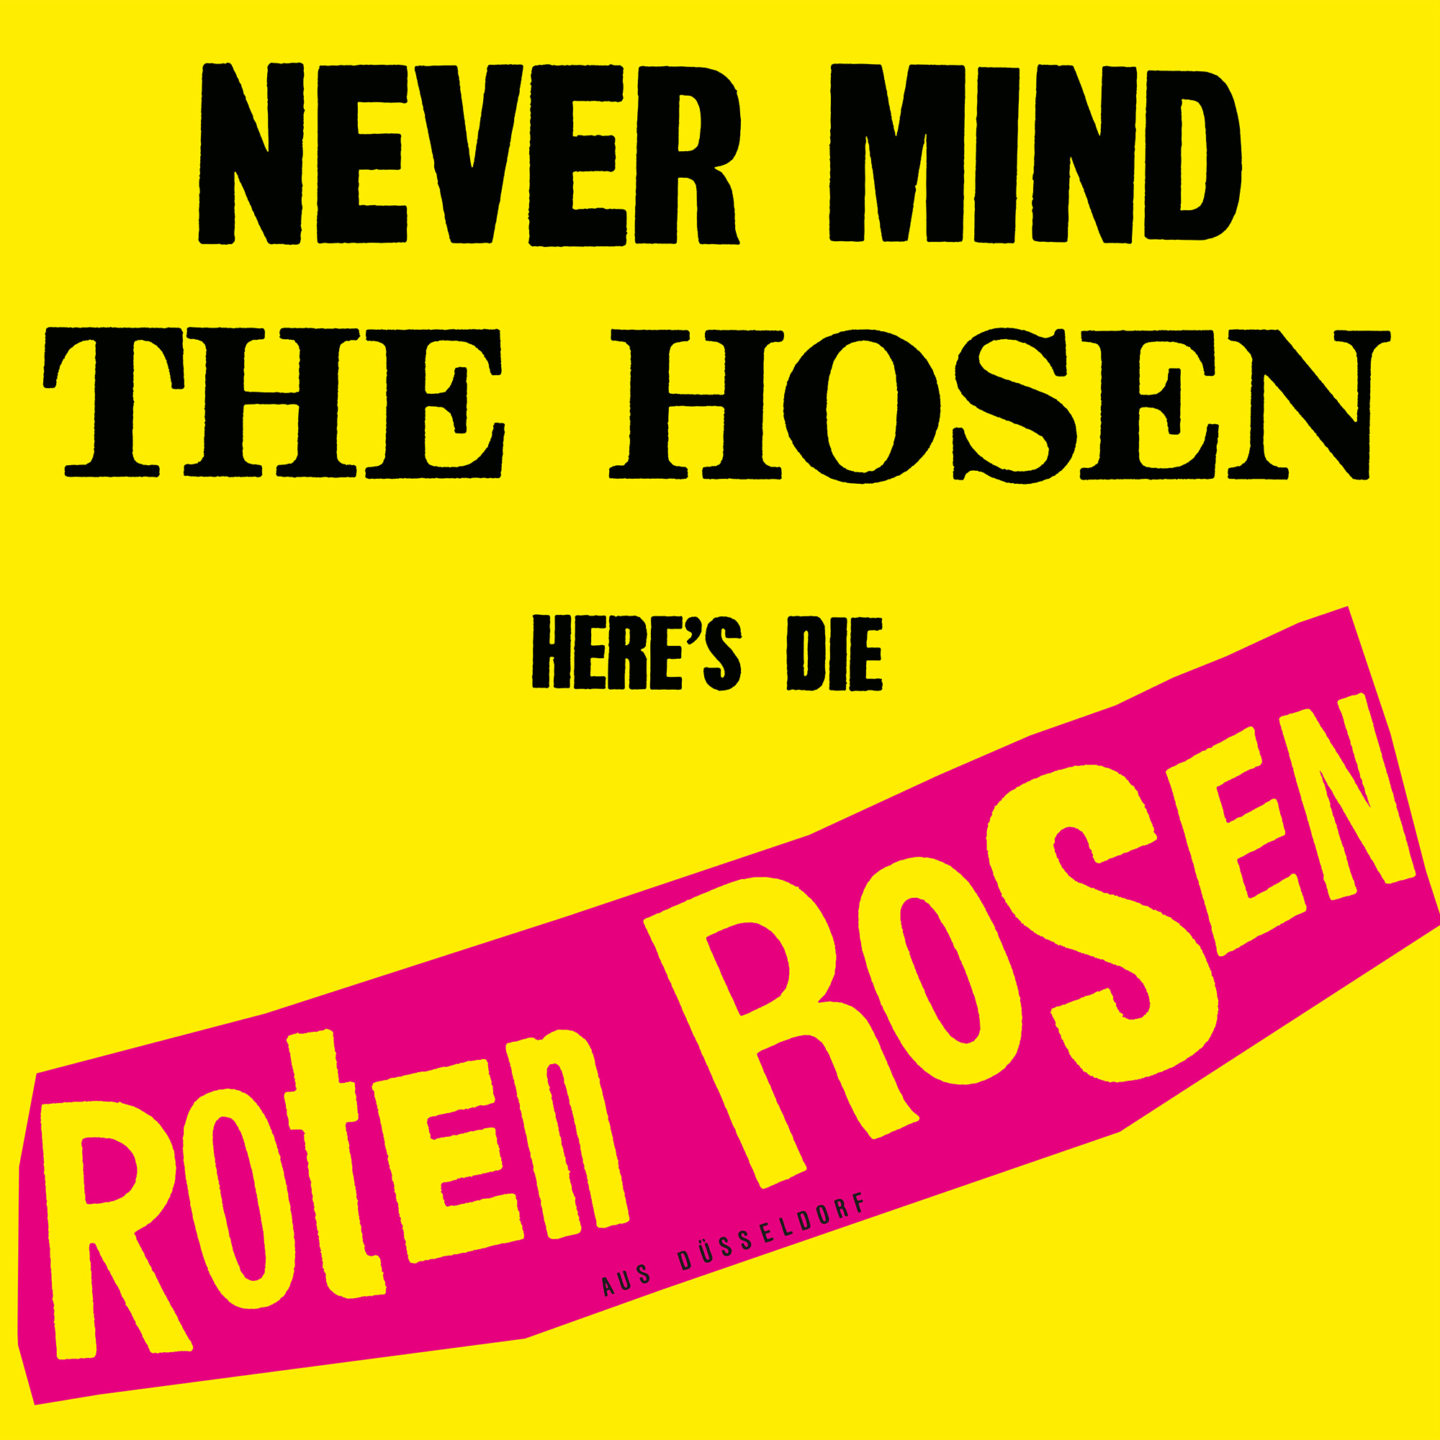 Die Toten Hosen - Never mind the Hosen (Remastered)